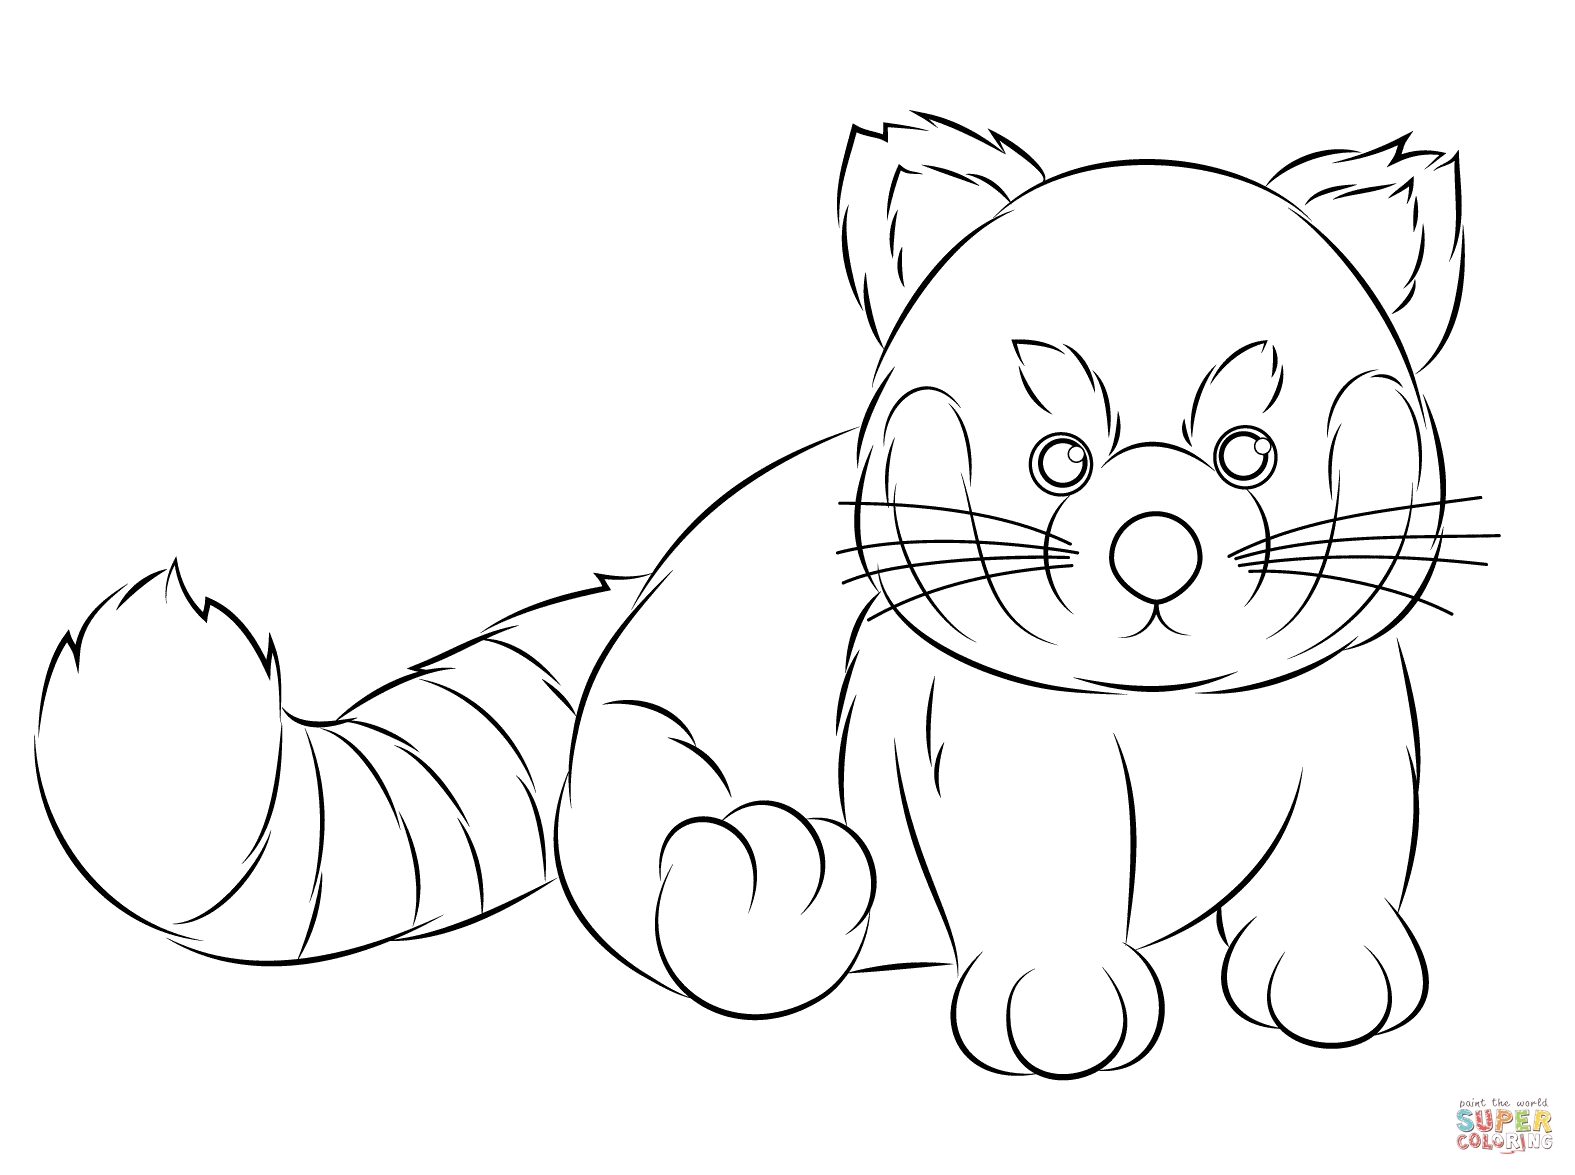 Red Panda Coloring Page - Webkinz Red Panda Coloring Page